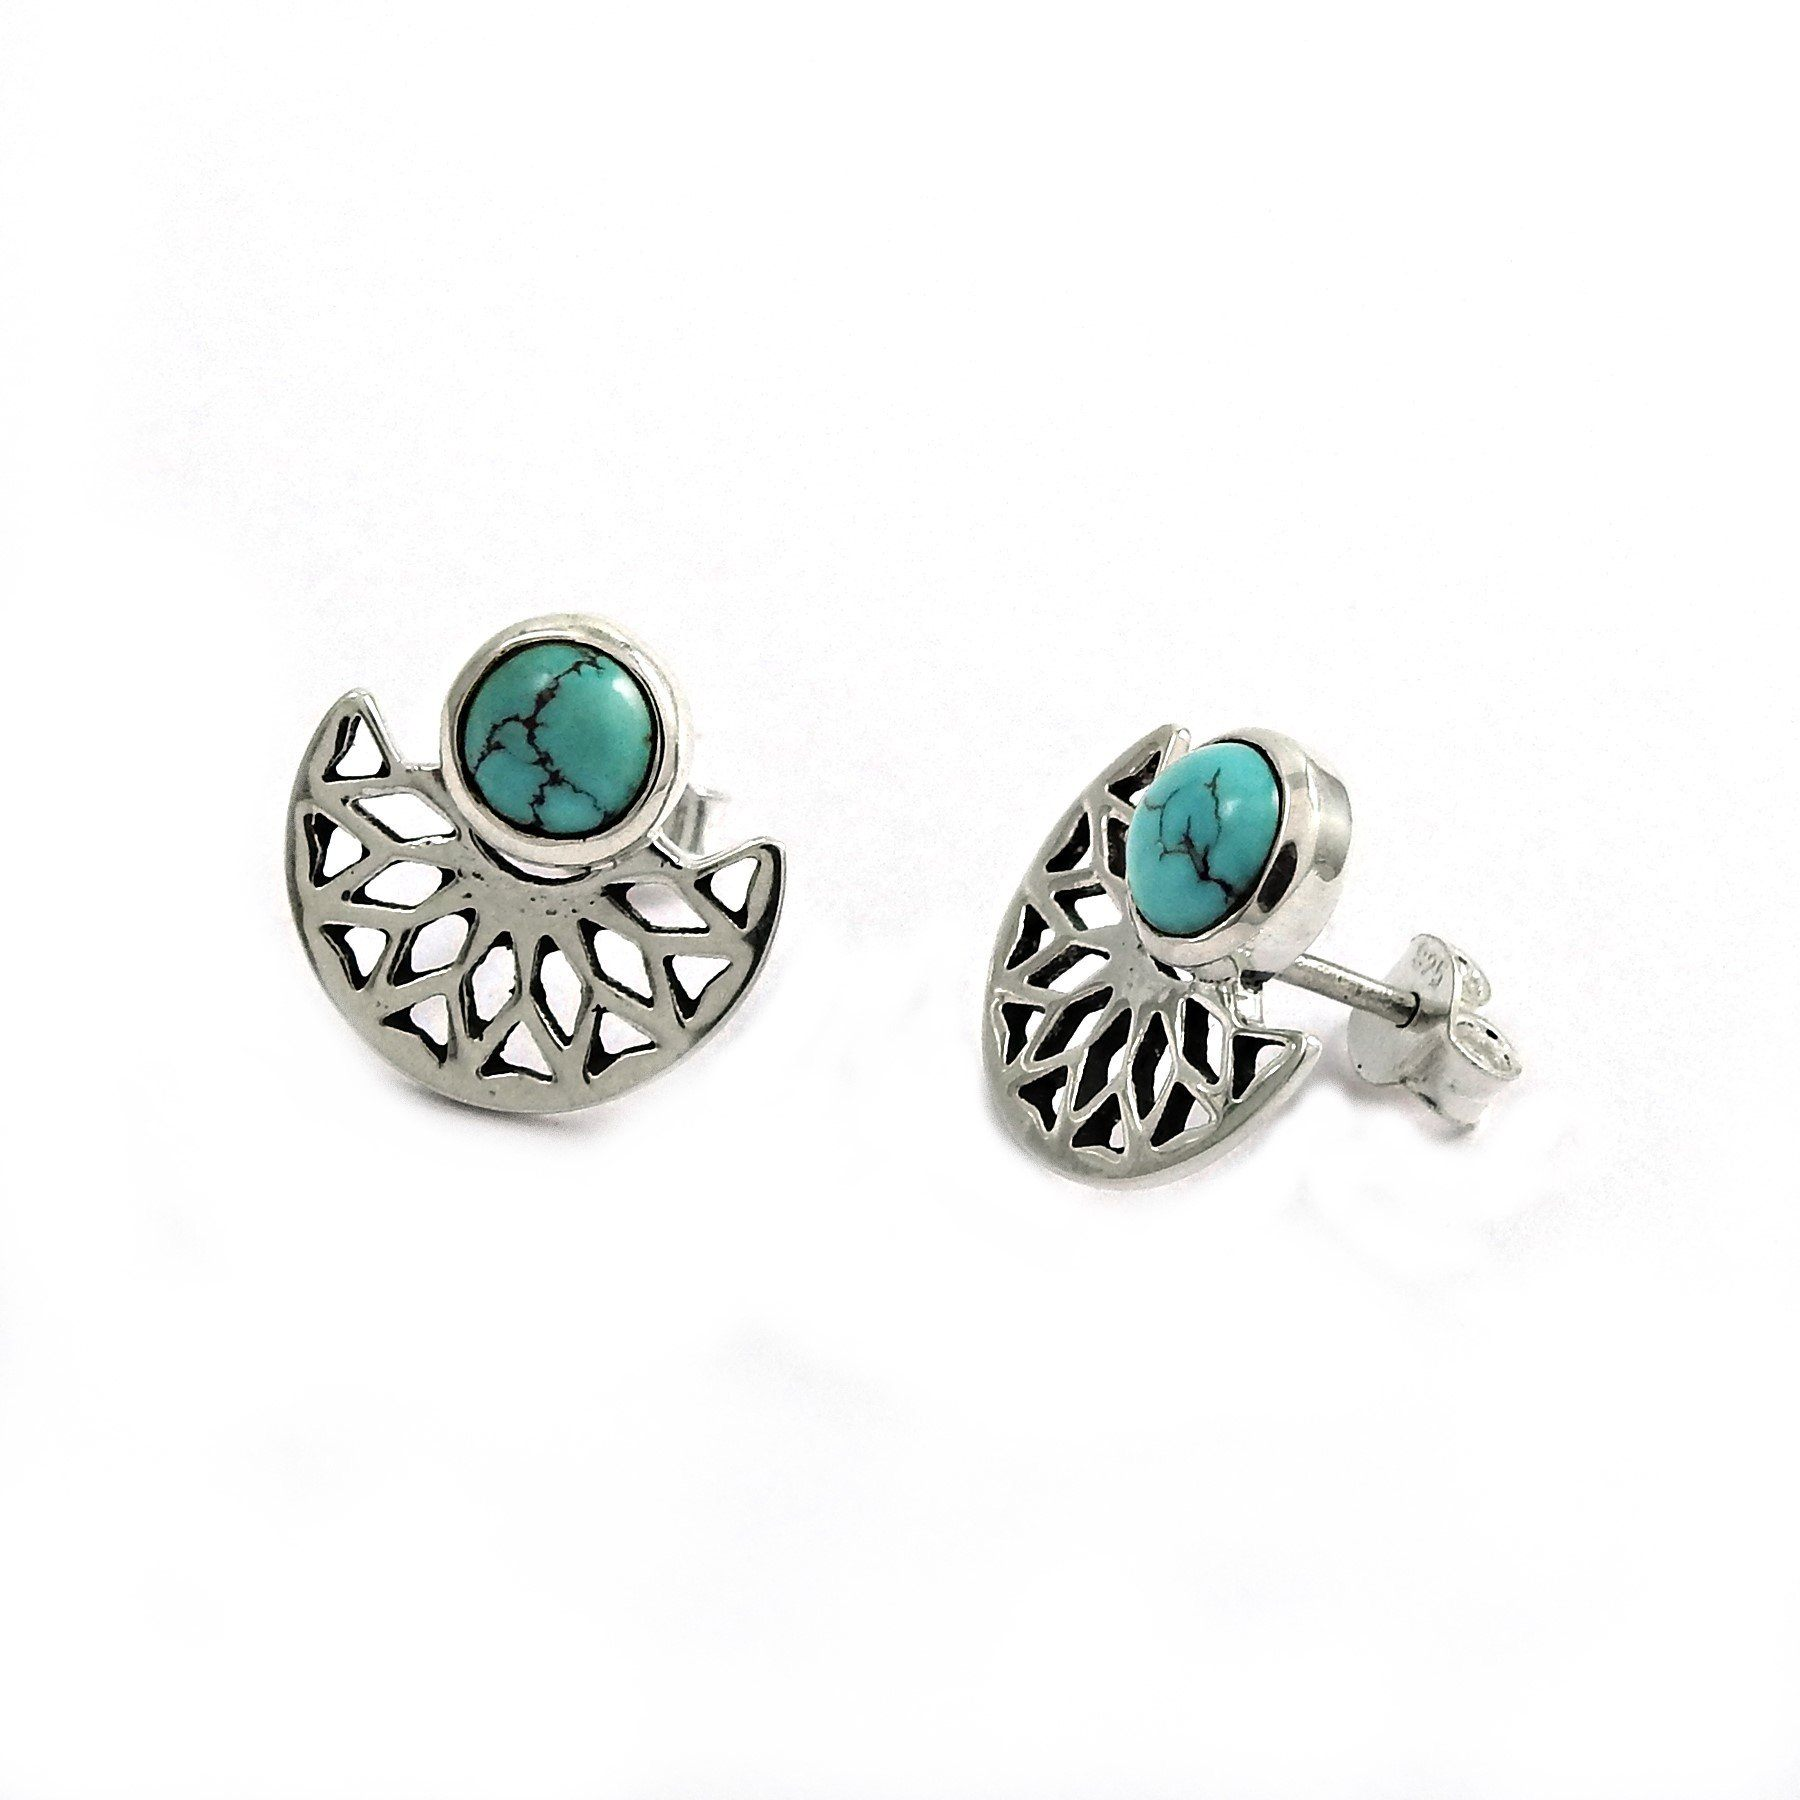 Authentic Handcrafted Turquoise Gemstone Silver Earring